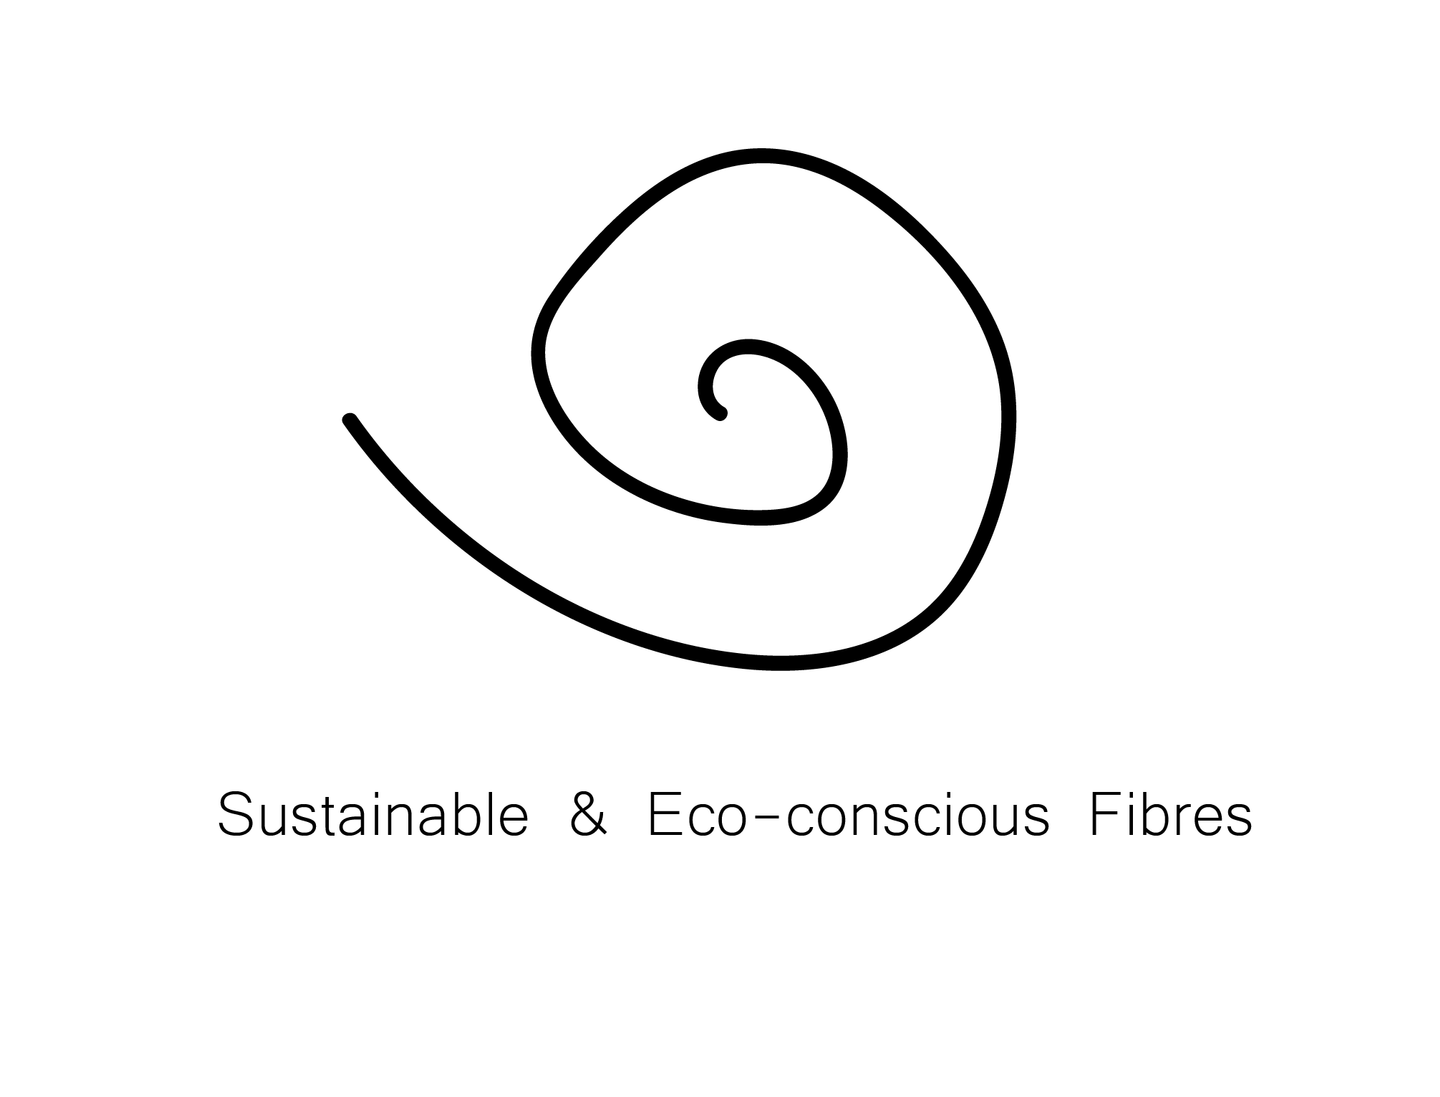 Sustainable & Eco-conscious Fibers